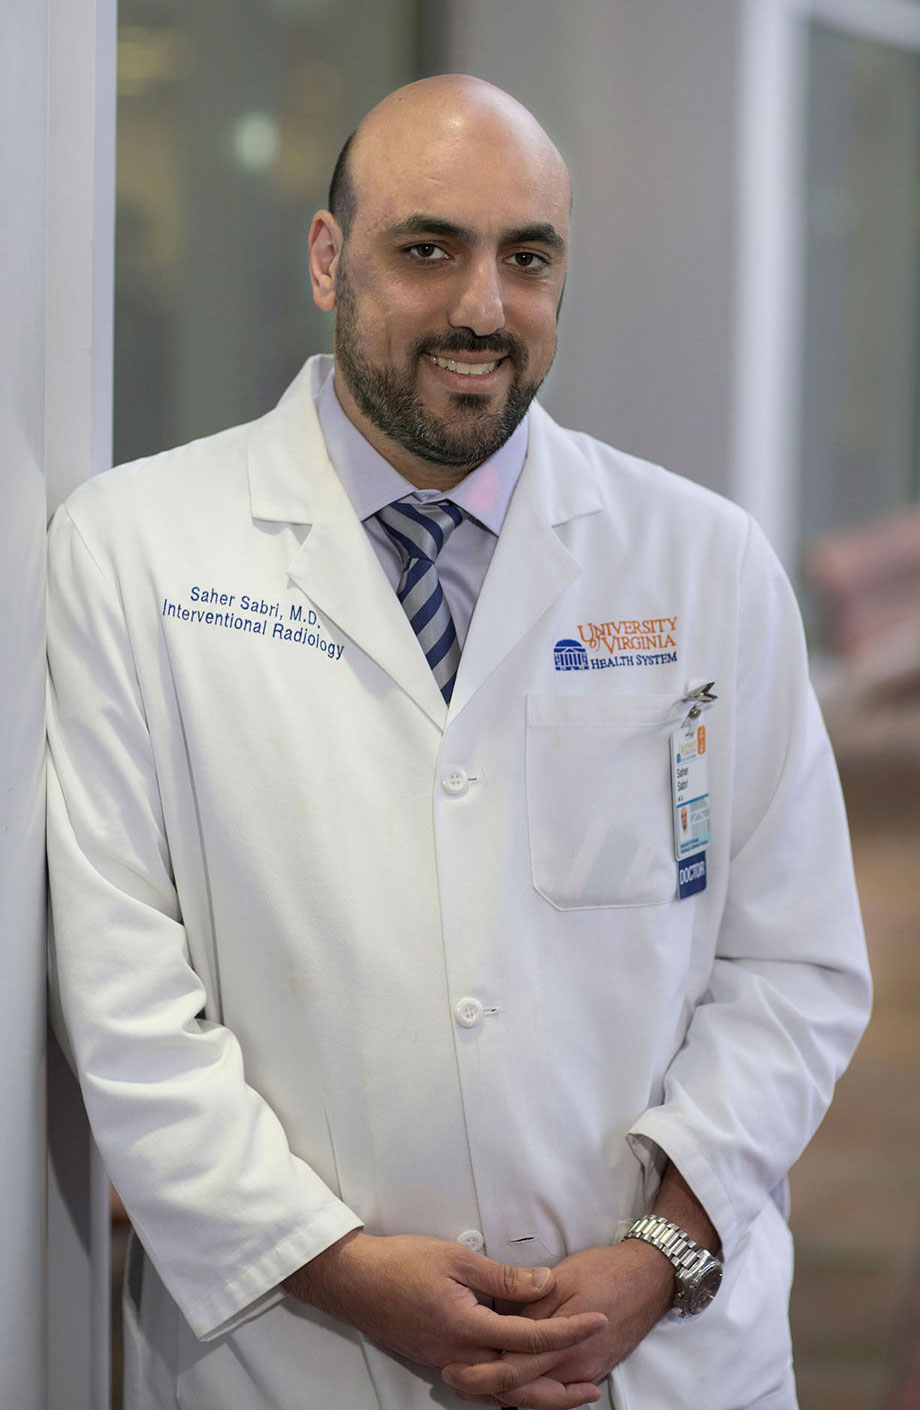 Dr. Saher Sabri, an associate professor of radiology, has led outreach efforts for the Islamic Society of Central Virginia.